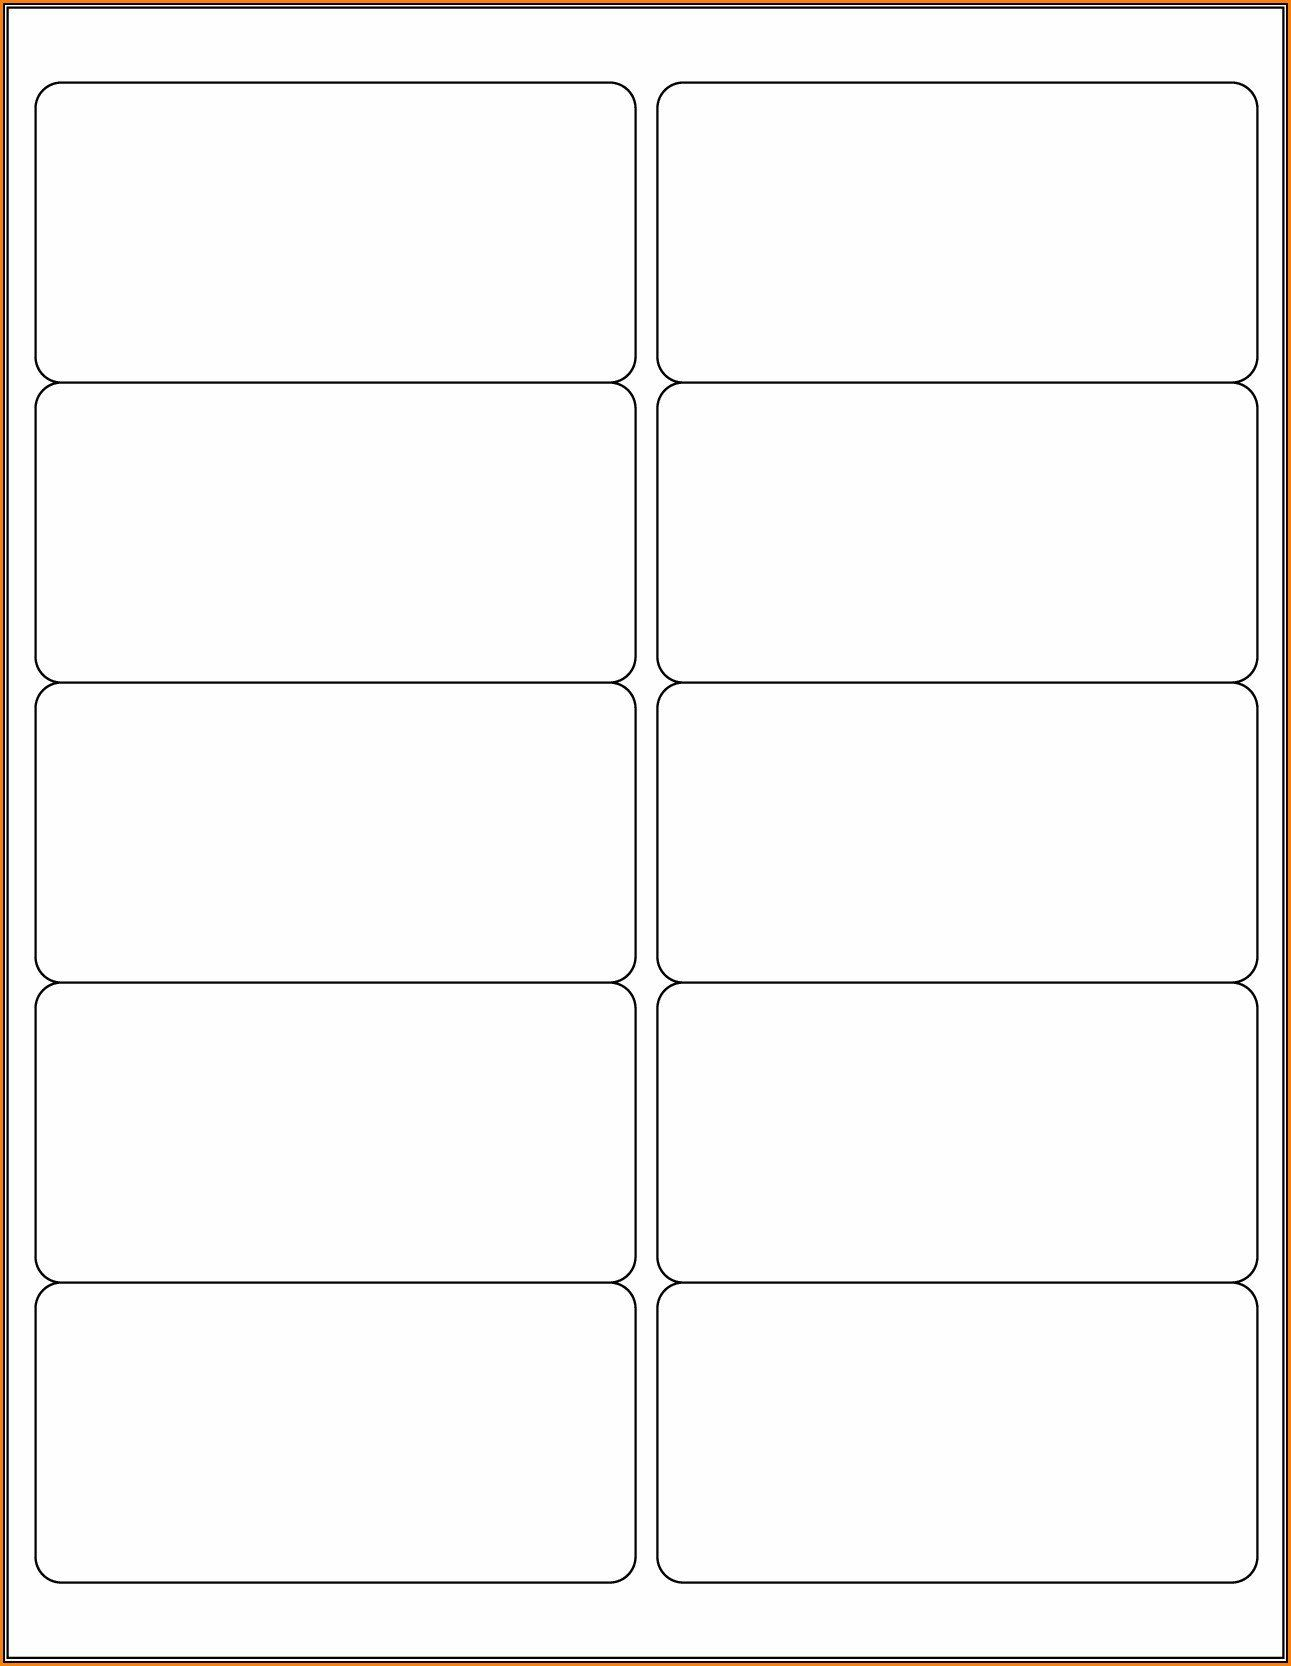 2 X 4 Shipping Label Template from i.pinimg.com